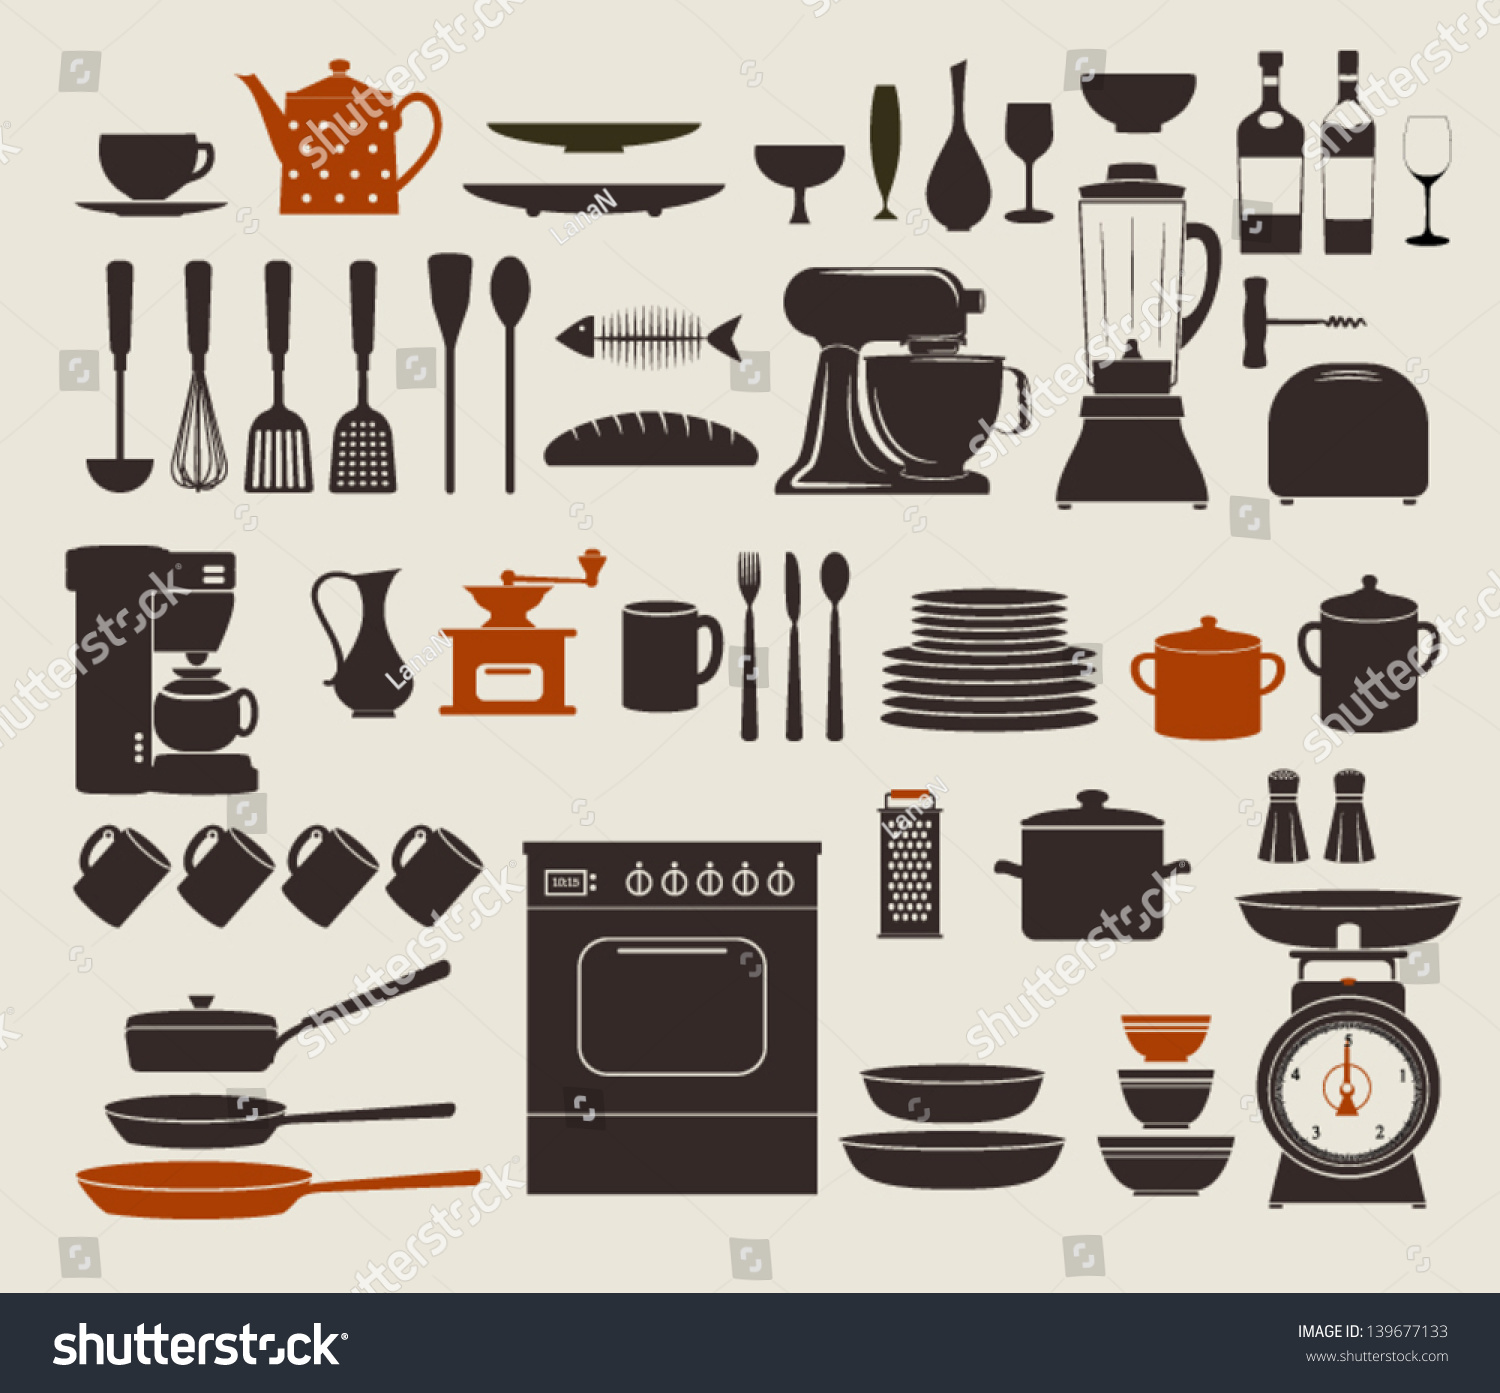 Kitchen Set Name List Of Kitchen Utensils A To Z Kitchen Utensils Names In